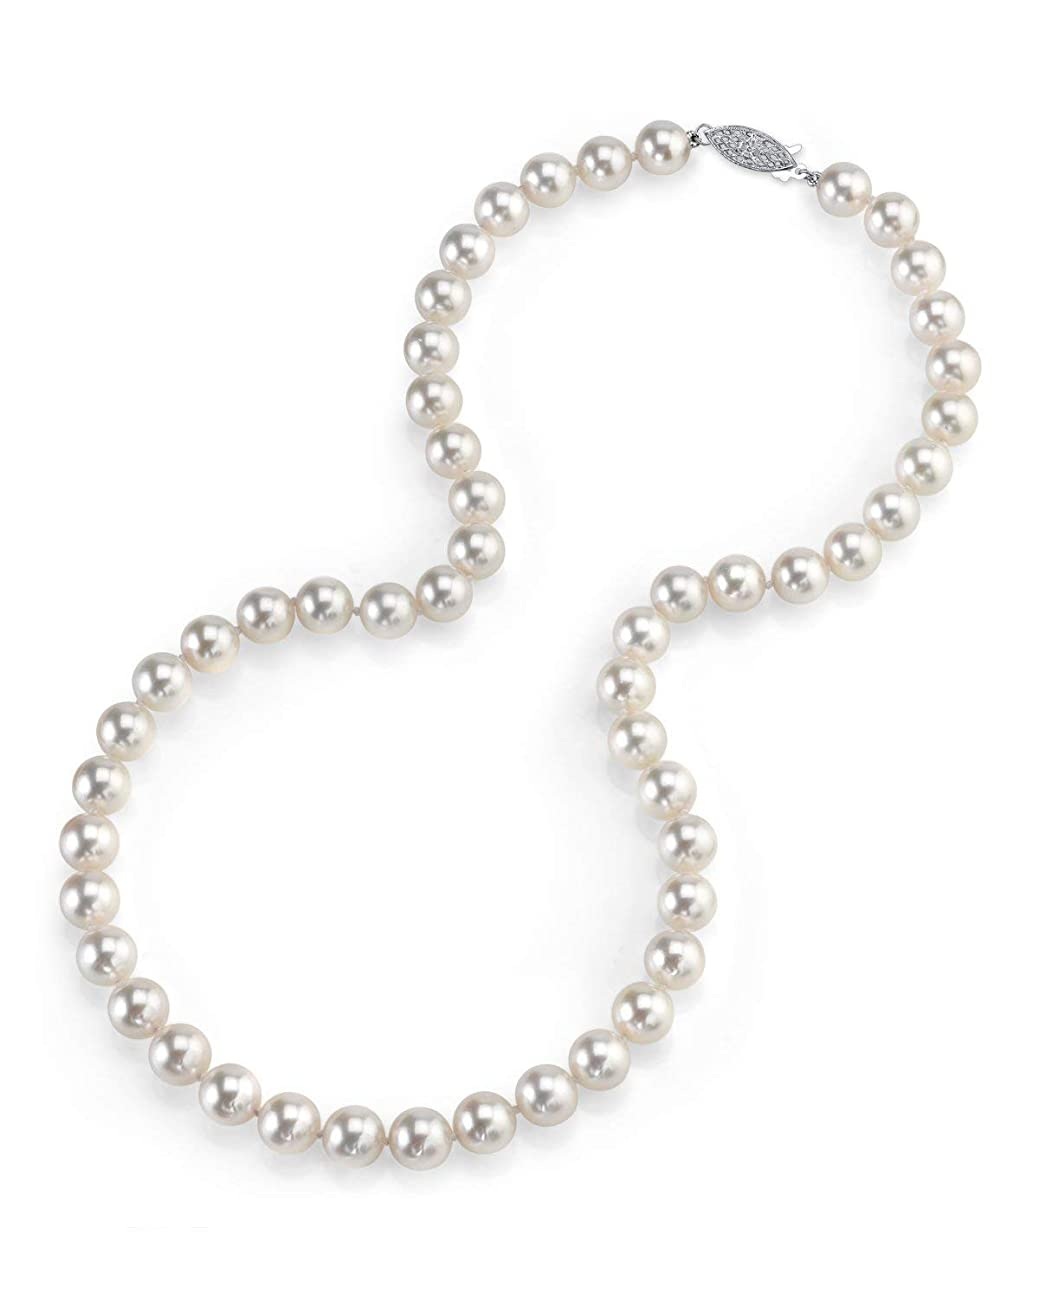 THE PEARL SOURCE 14K Gold Round Genuine White Japanese Akoya Saltwater Cultured Pearl Necklace in 18